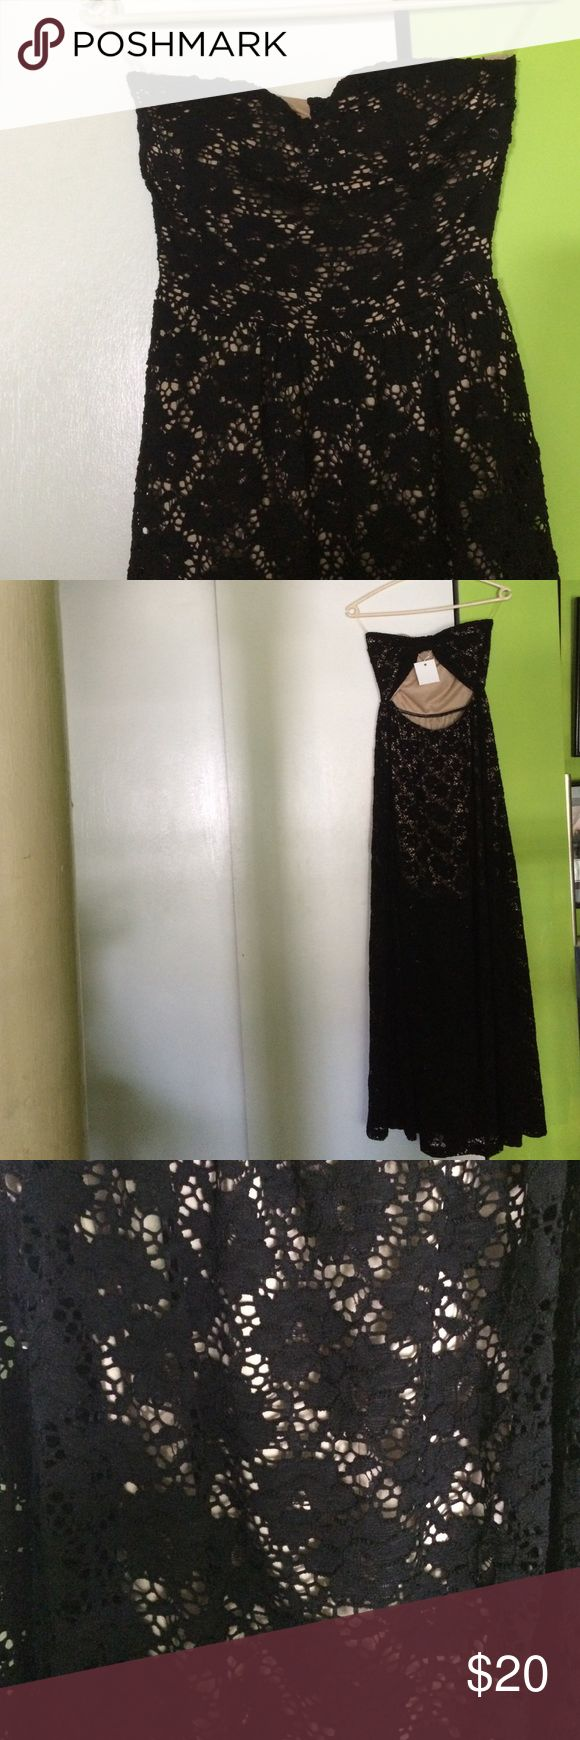 Throwbackthursday dramatic dress mona lucero fashion design - Strapless Lace Maxi Dress Black Lace Strapless Dress With Short Nude Underlay Open In Back